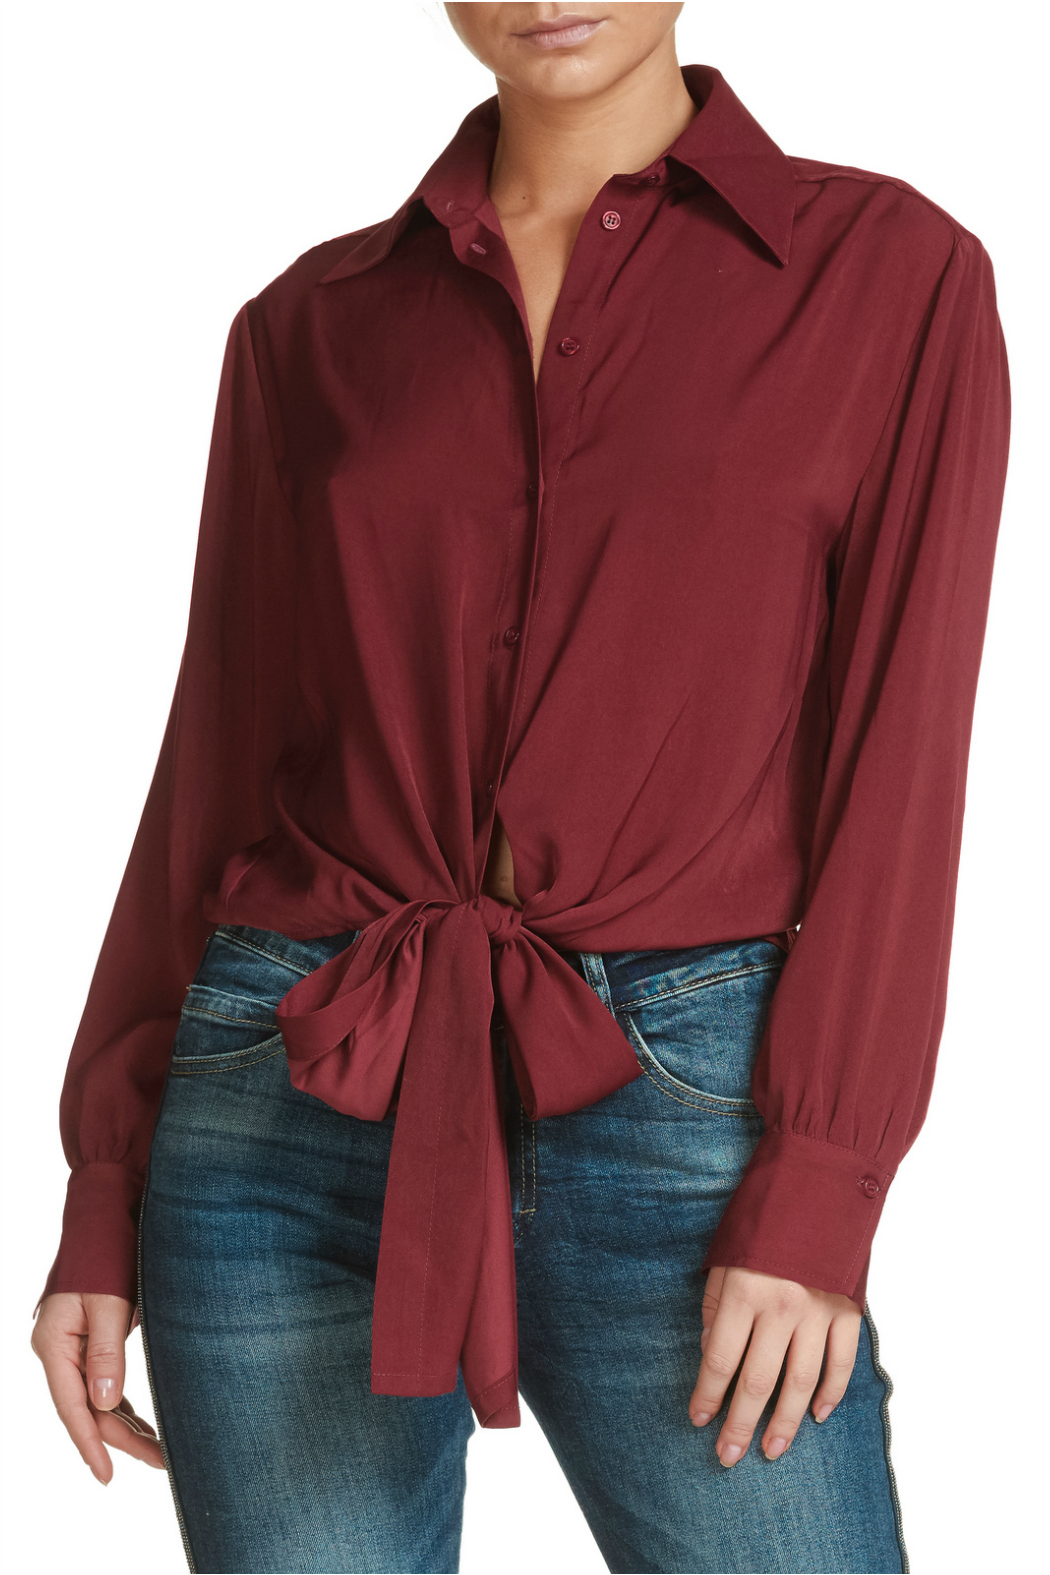 Elan Button Down Top - Main Image